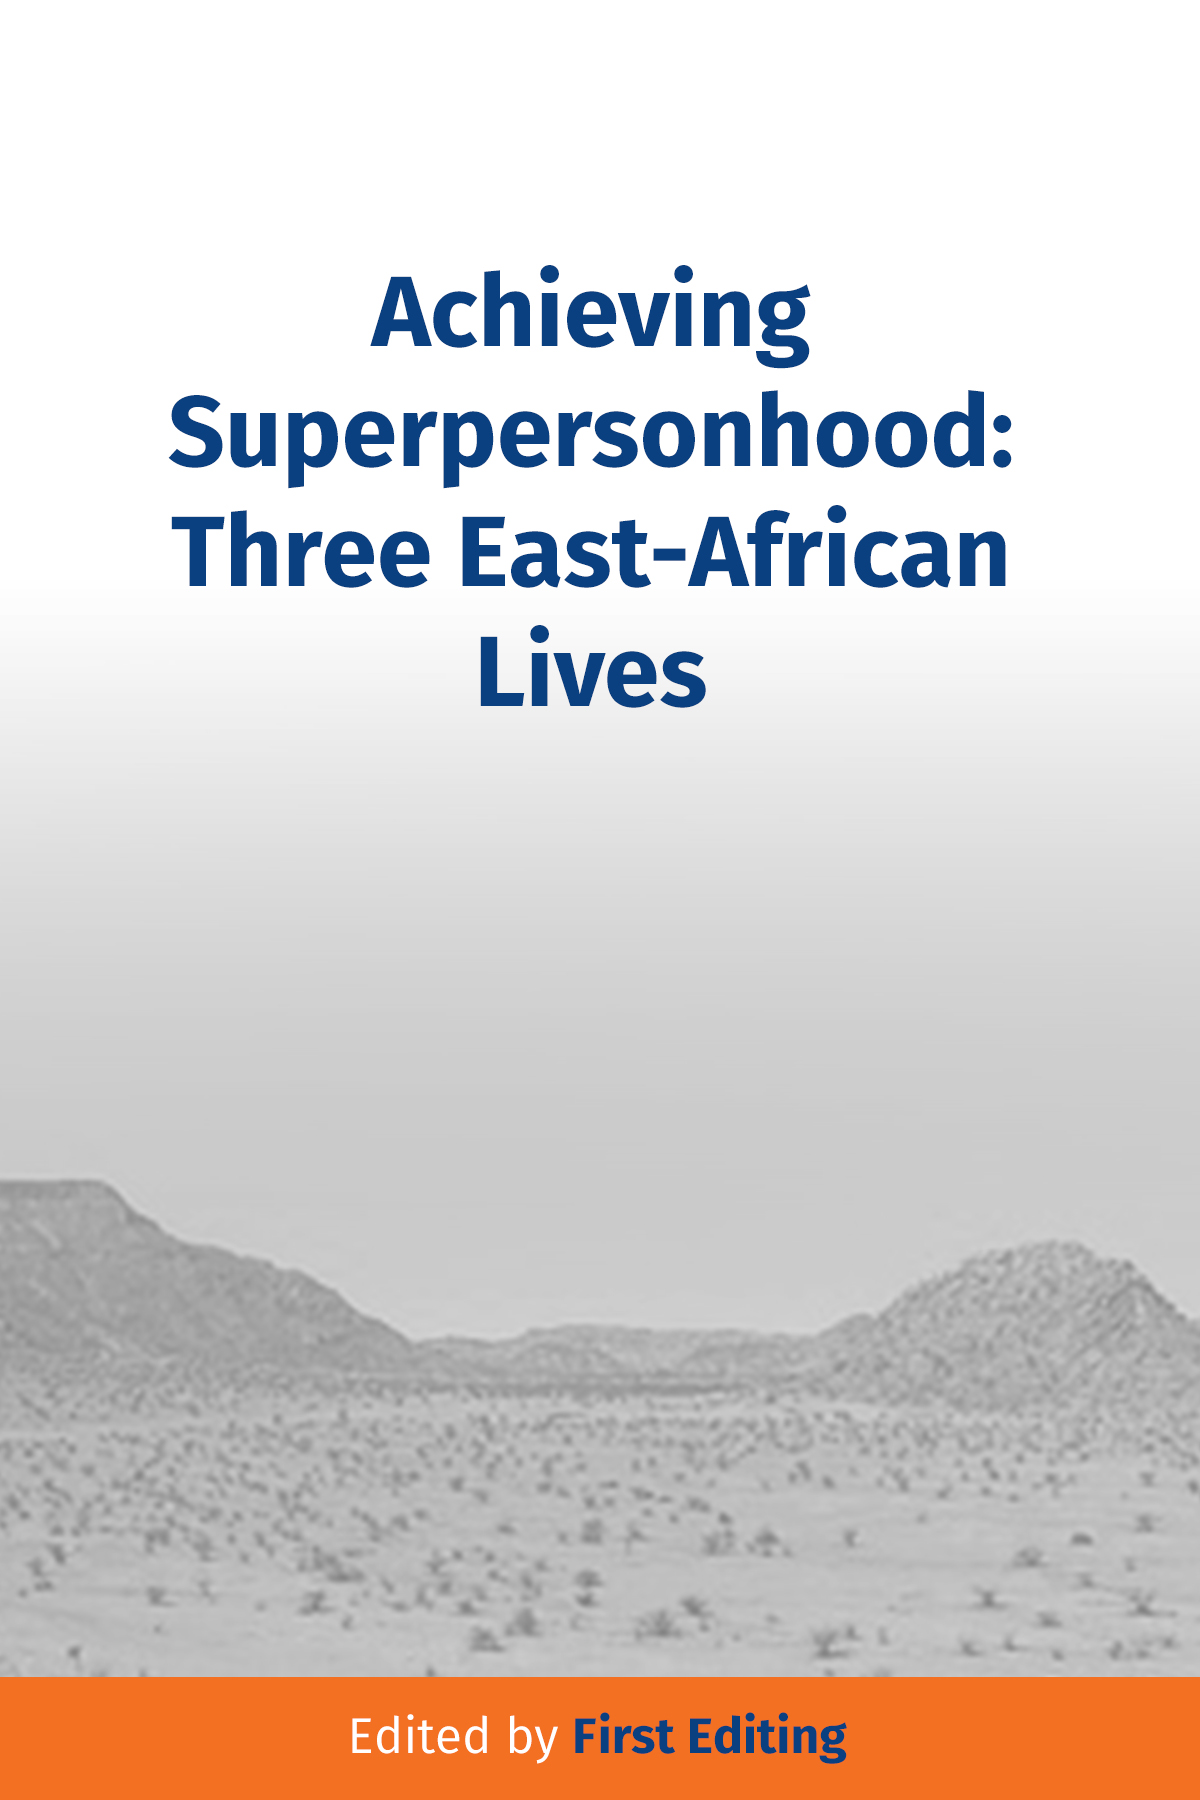 Achieving Superpersonhood: Three East African Lives  (change in title)